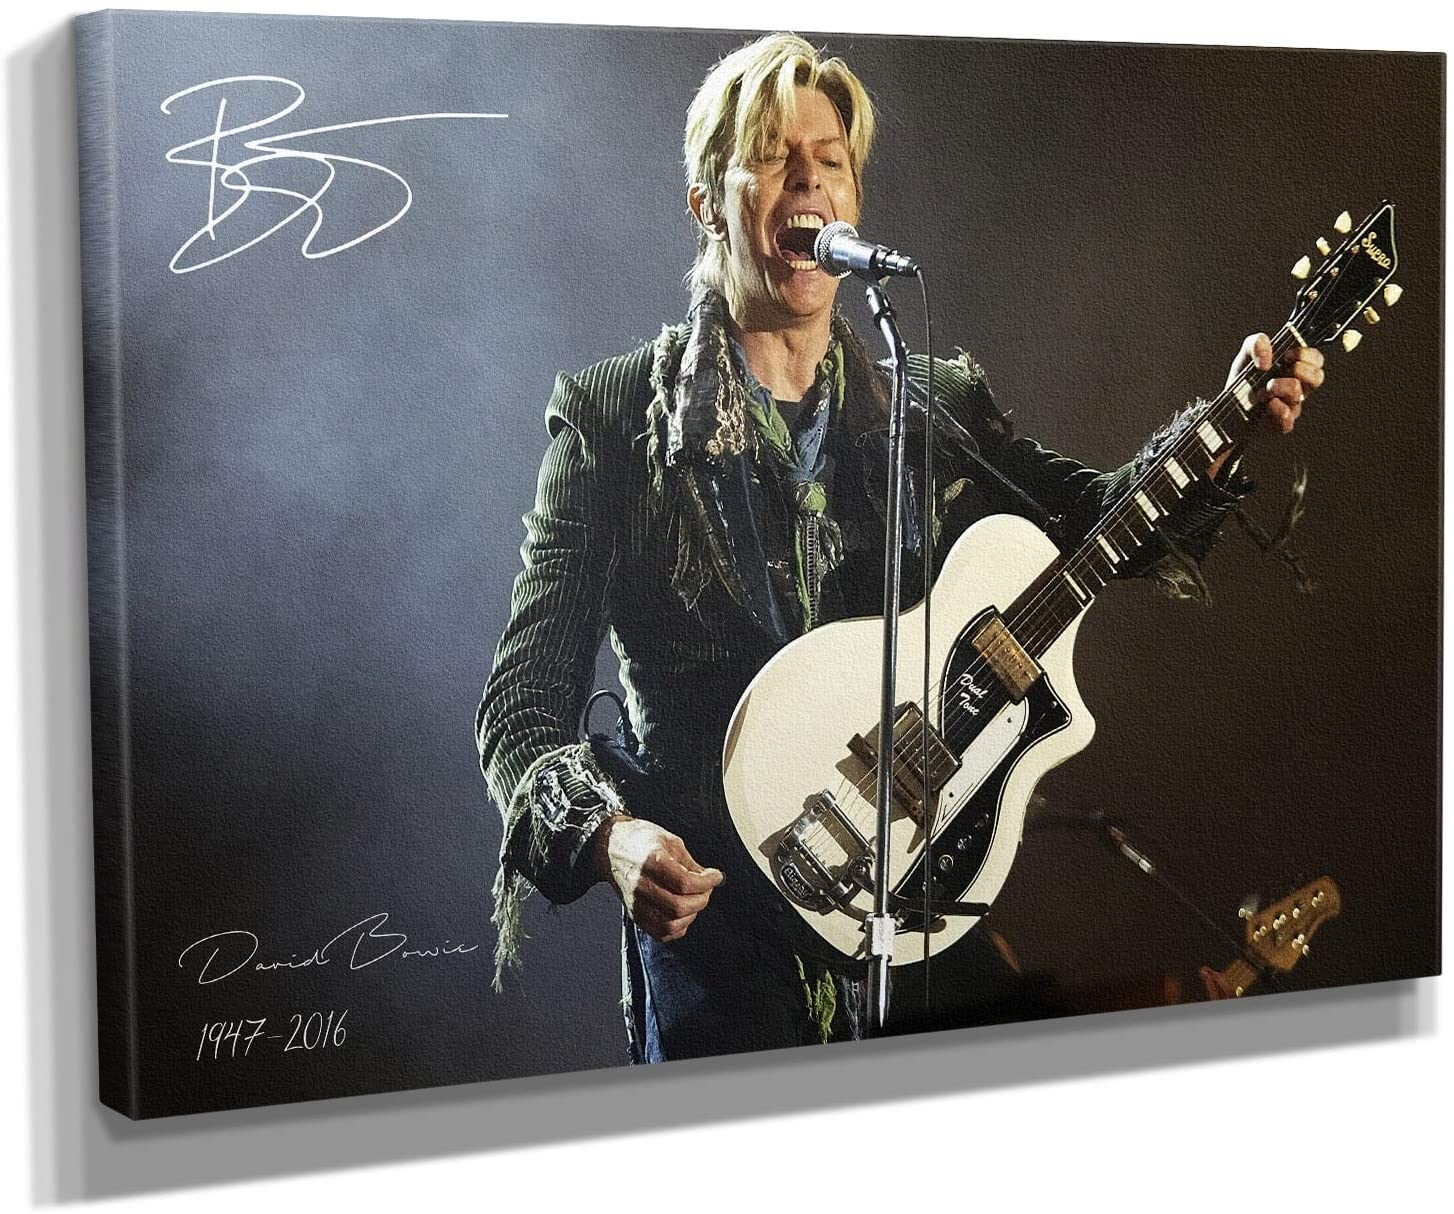 David Bowie Guitar Signature Canvas Art Wall Art Home Decor (36in x 24in Gallery Wrapped)